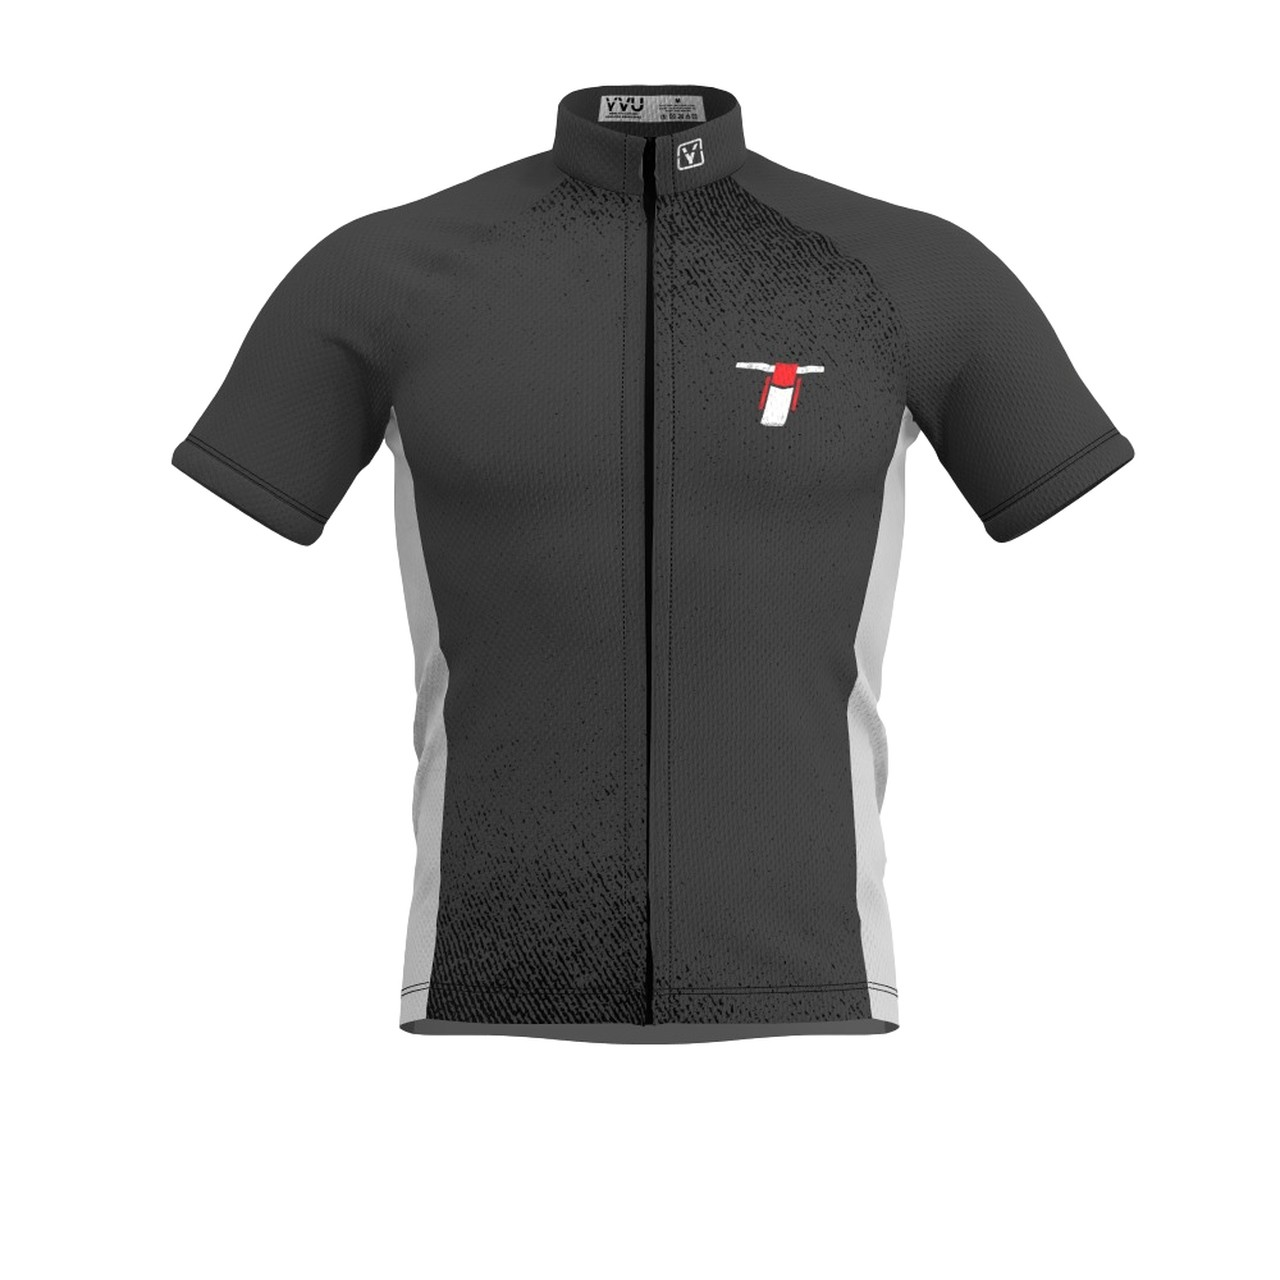 Camisa Bike Tribos e Trilhas Dry Tech Grey